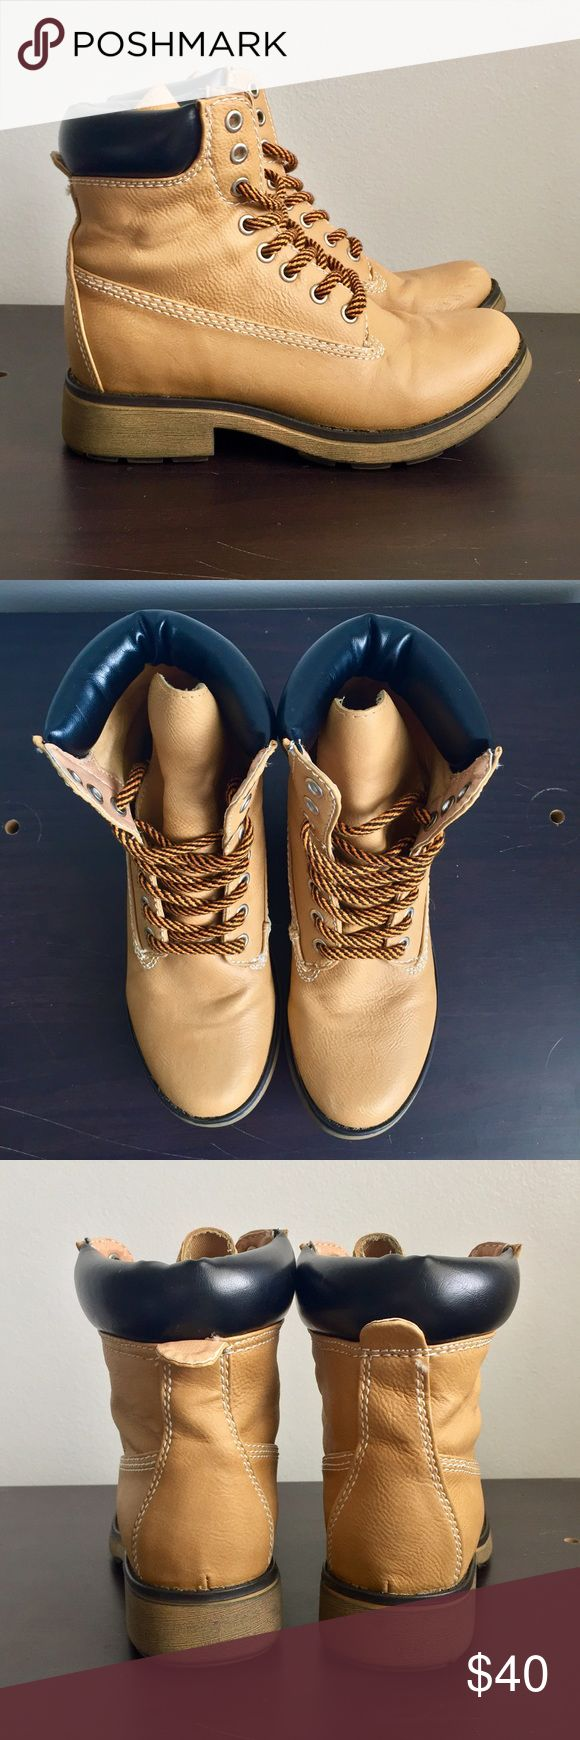 Steve Madden Women's Work Boot Steve Madden timberland-style boots. Light wear and tear: some creasing in the front and back. Left boot has a few barely noticeable scuffs. Still in great condition. Size 6. No trades. Steve Madden Shoes